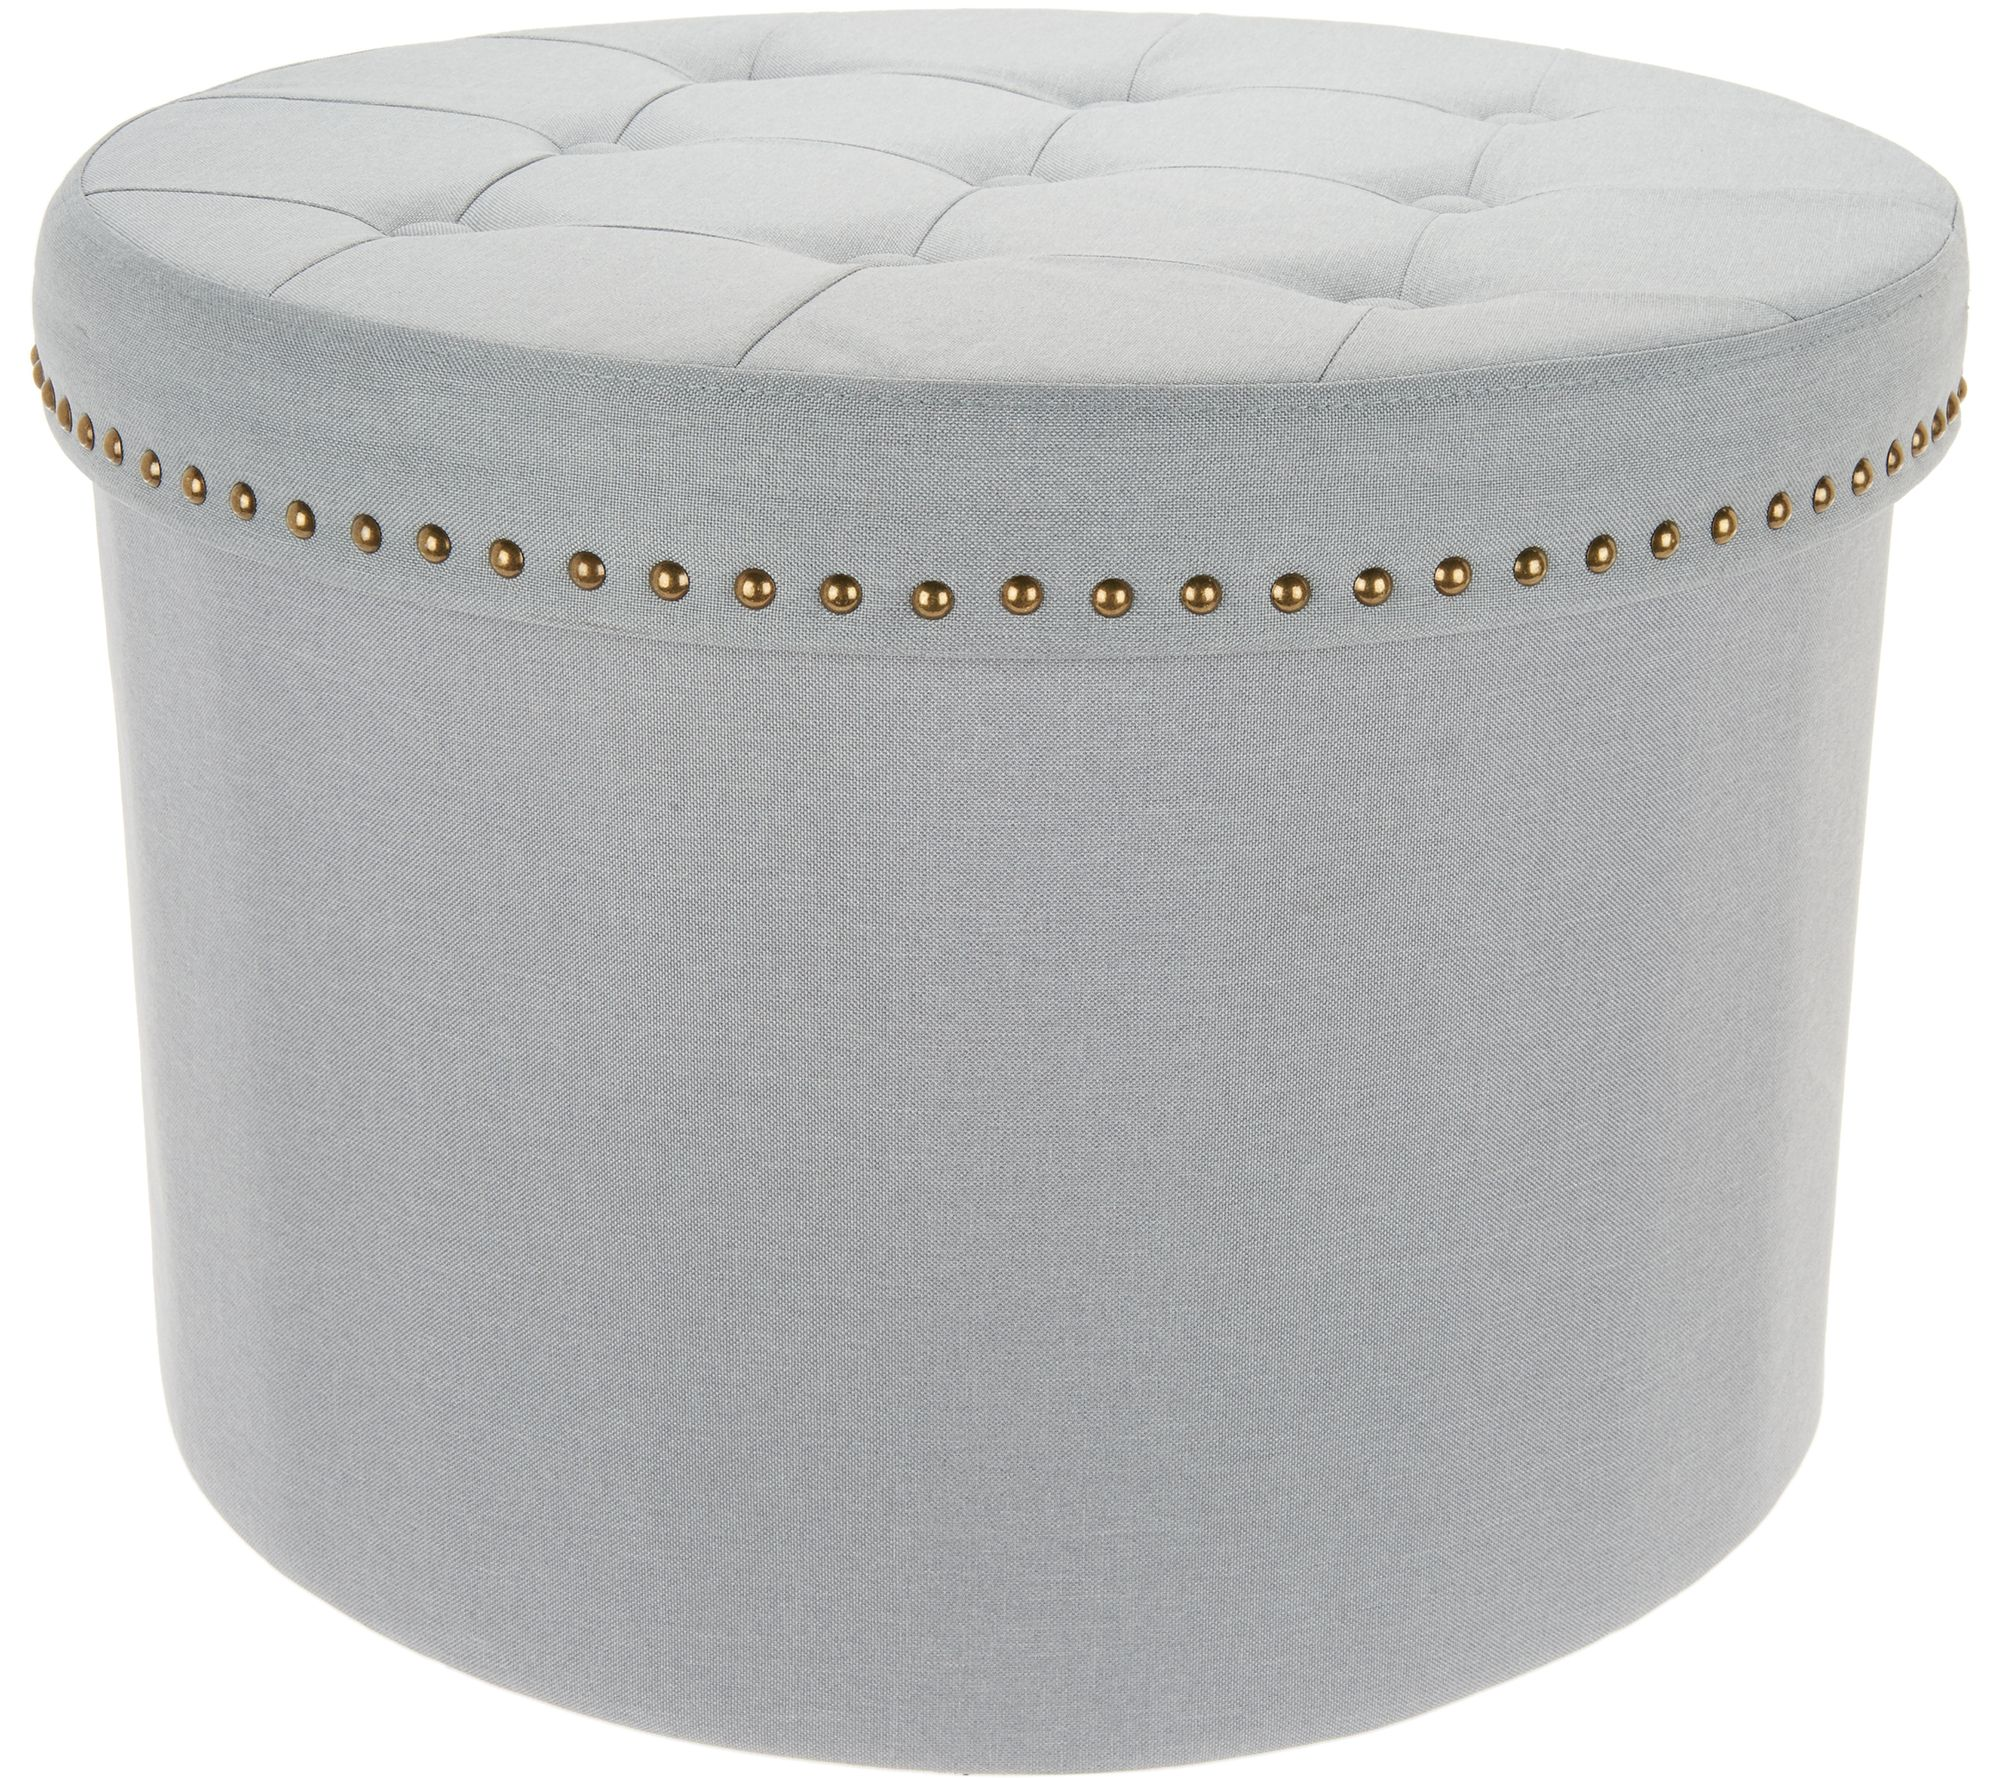 Inspire Me Home Decor 24 Round Tufted Collapsible Storage